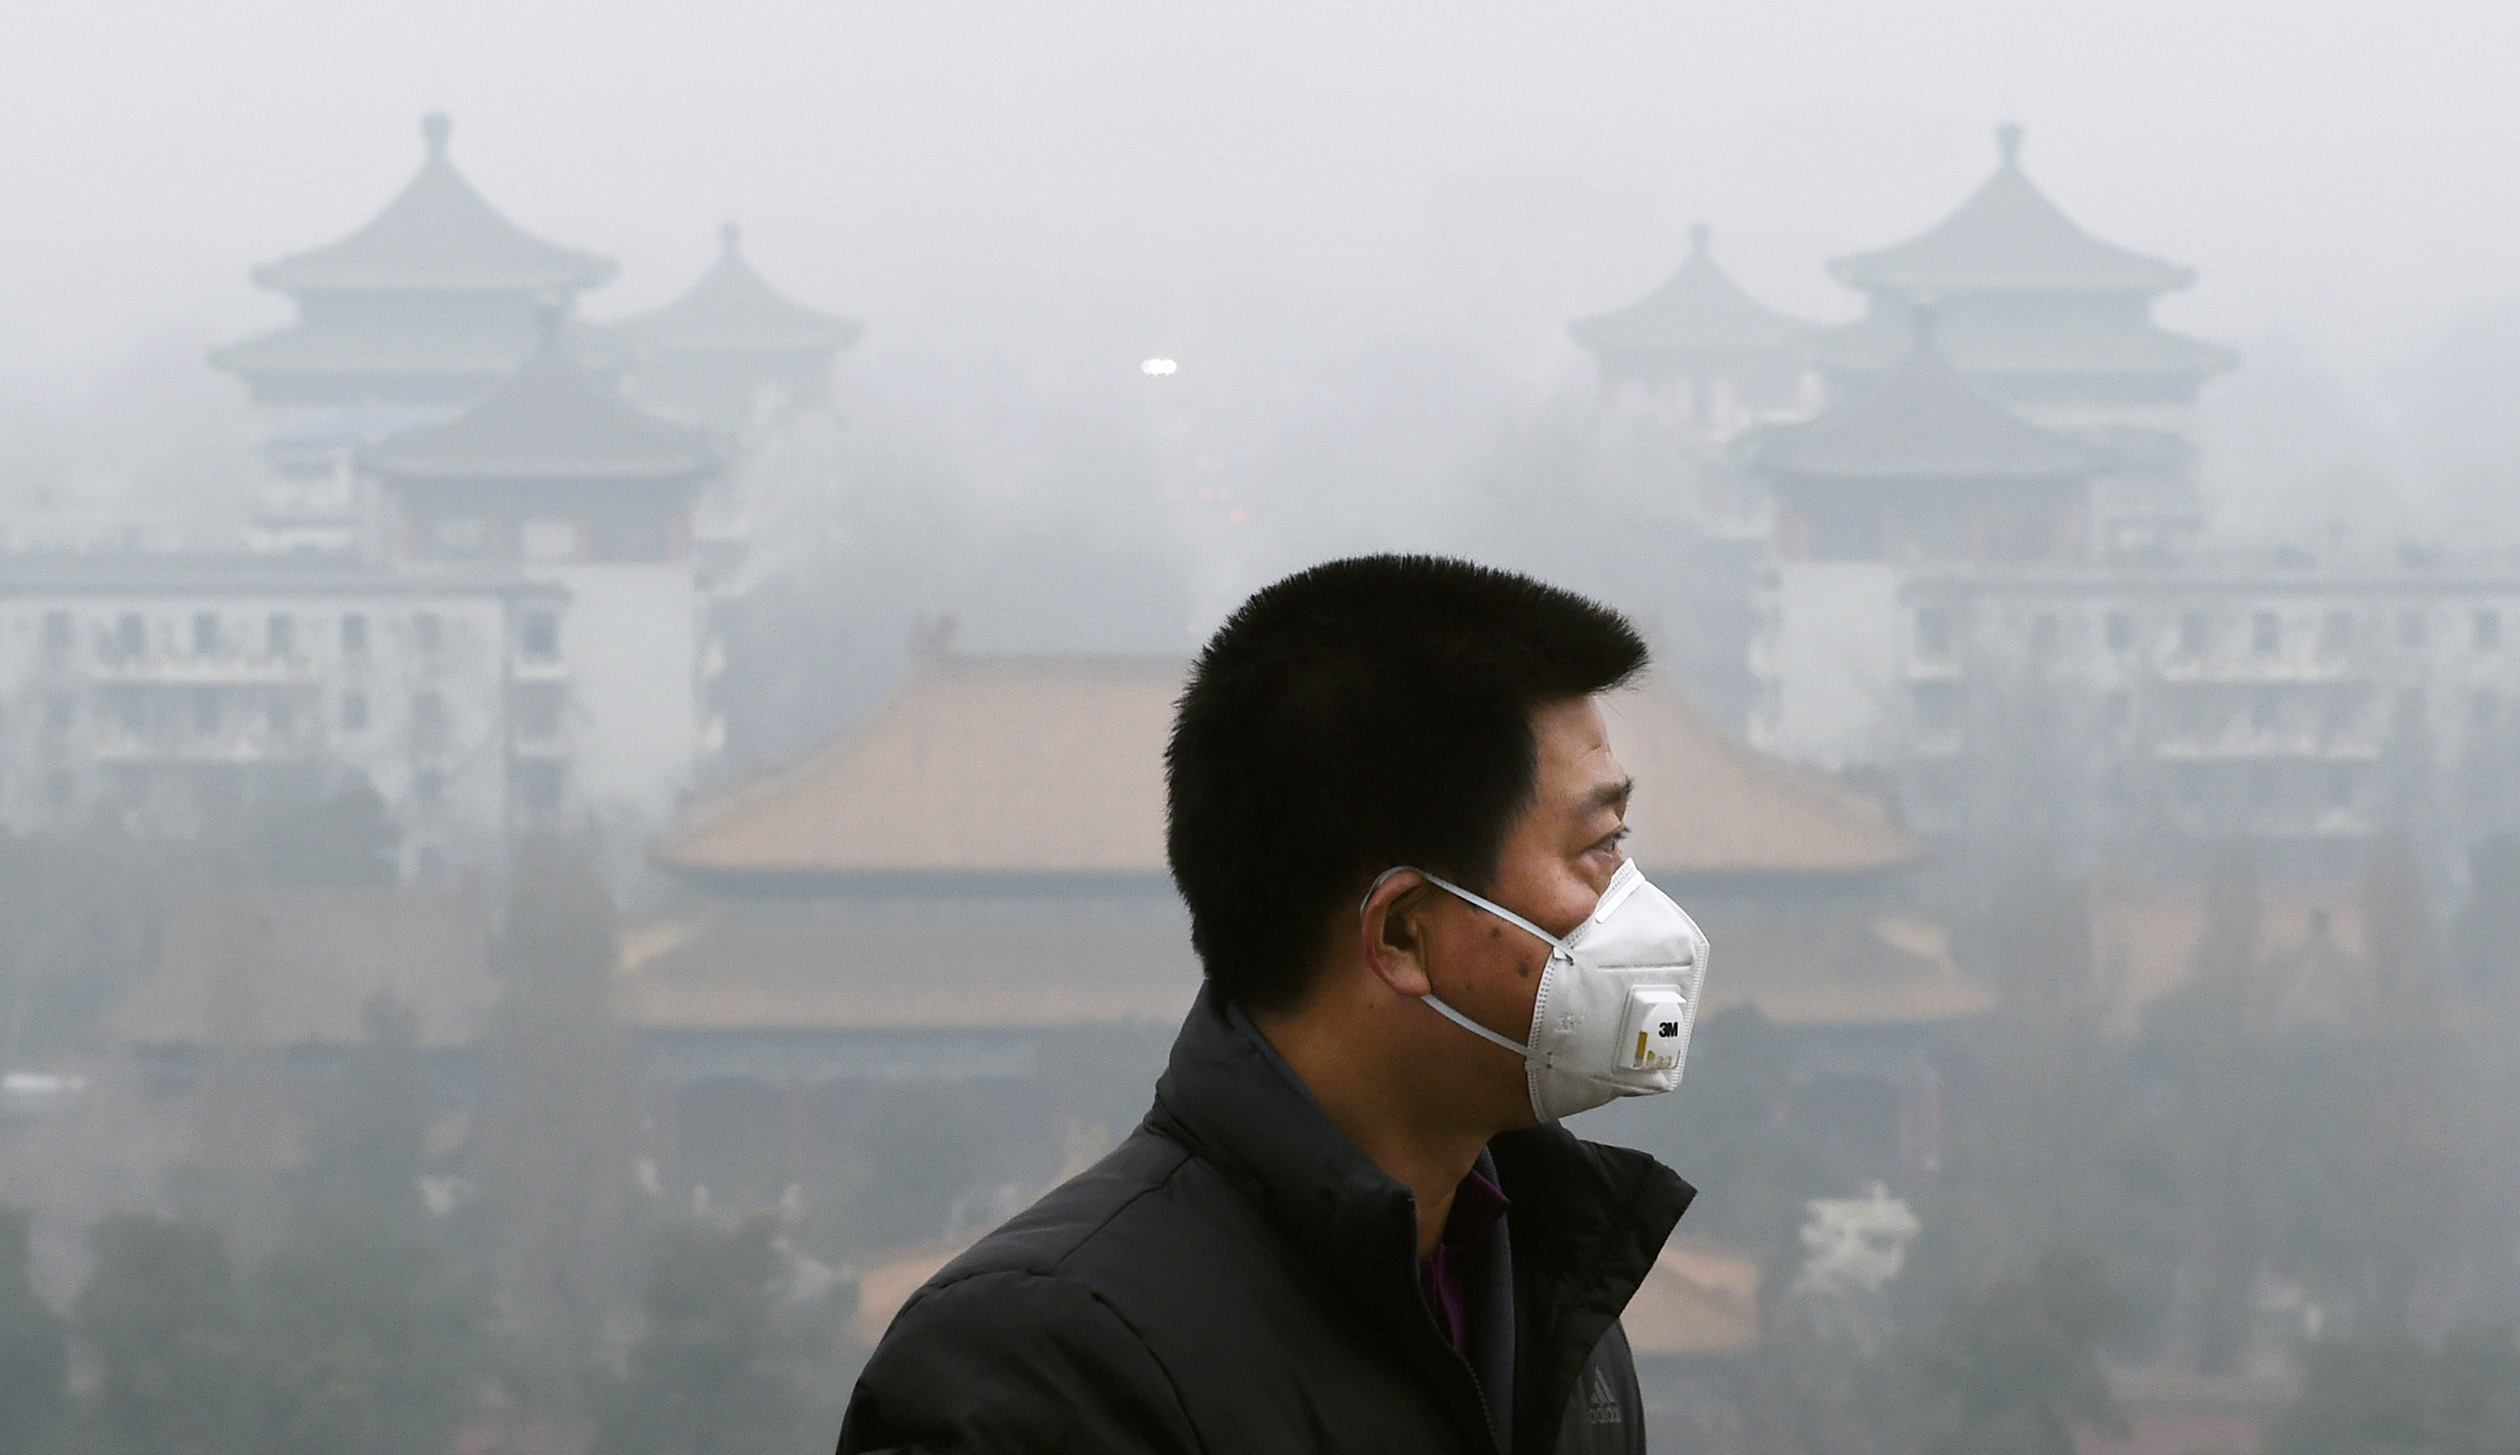 TOPSHOT-CHINA-COP21-CLIMATE-ENVIRONMENT-POLLUTION